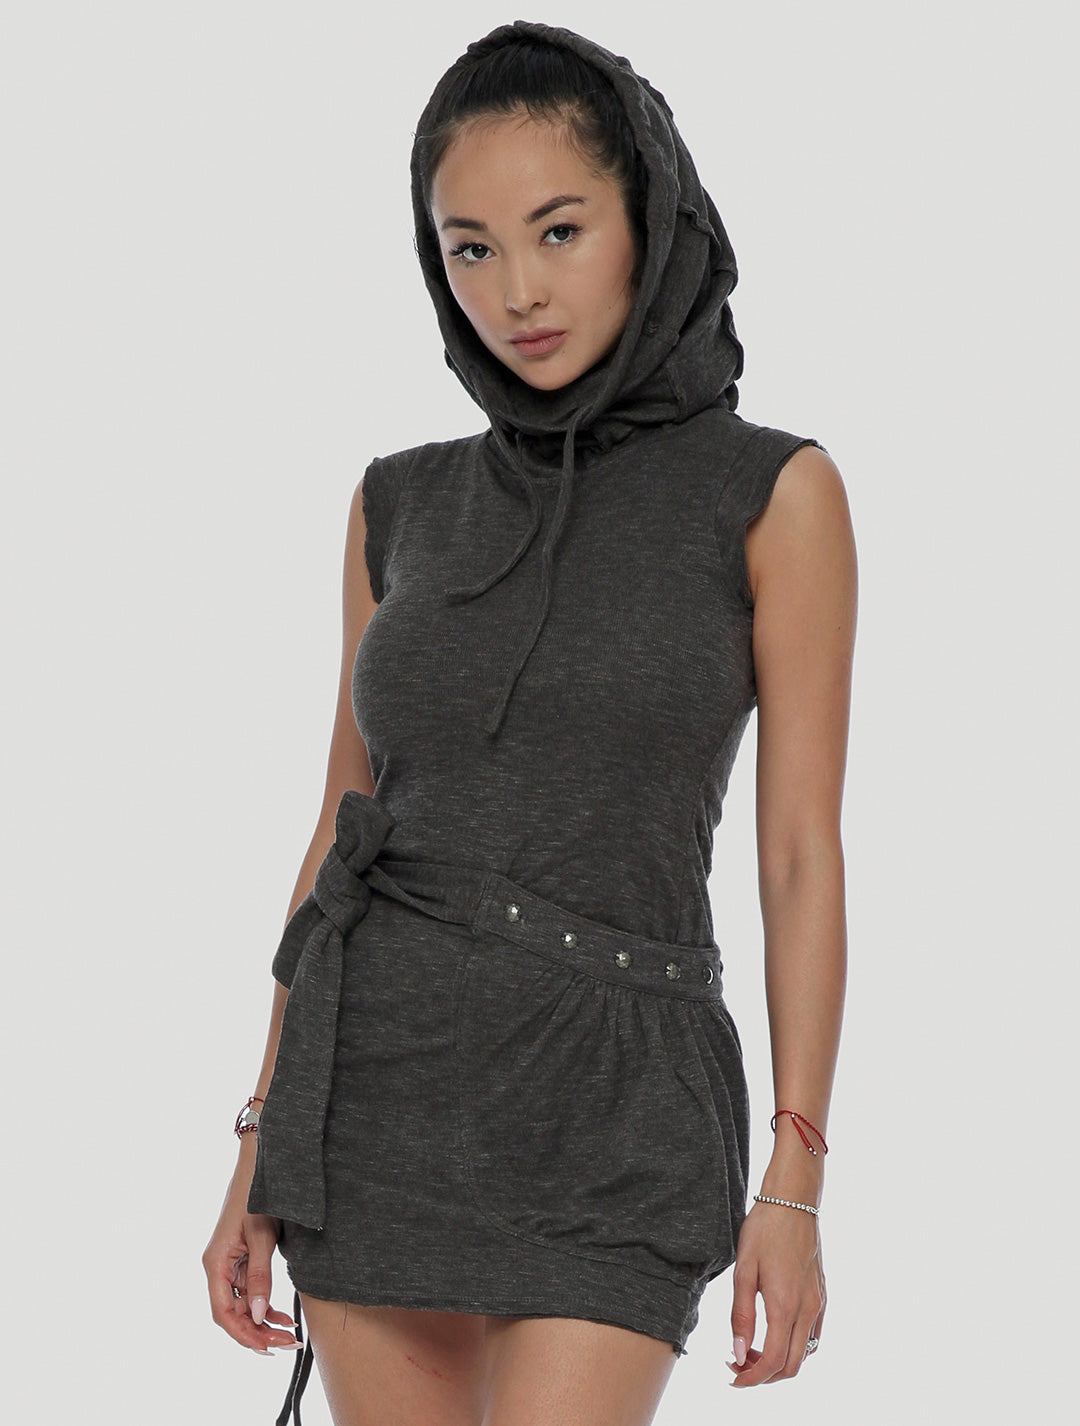 Soba Sleeveless Turtleneck Dress - Psylo